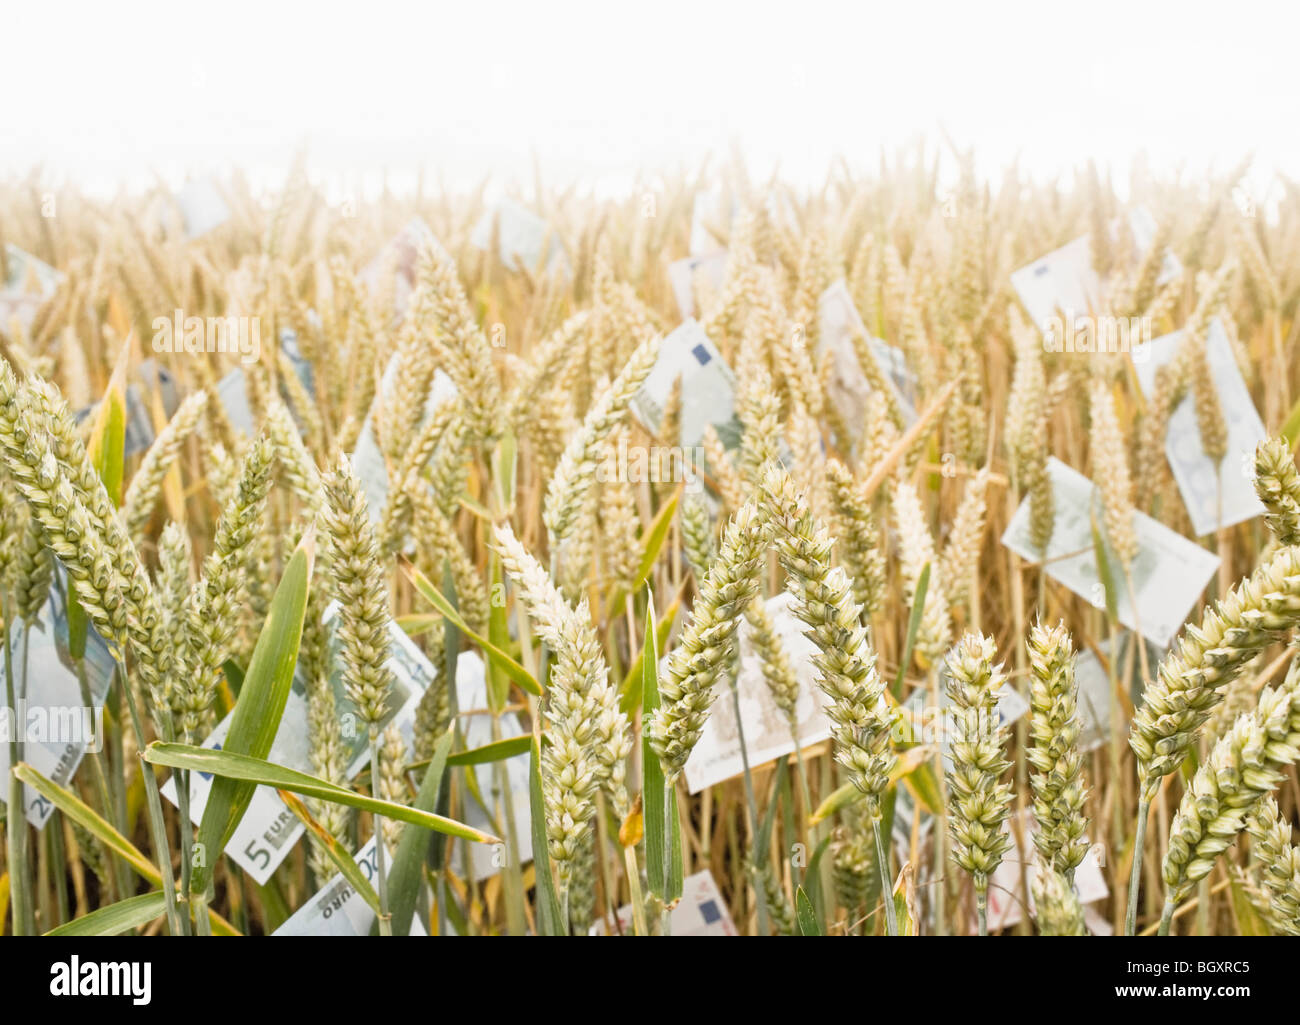 Wheat Field with money - Stock Image